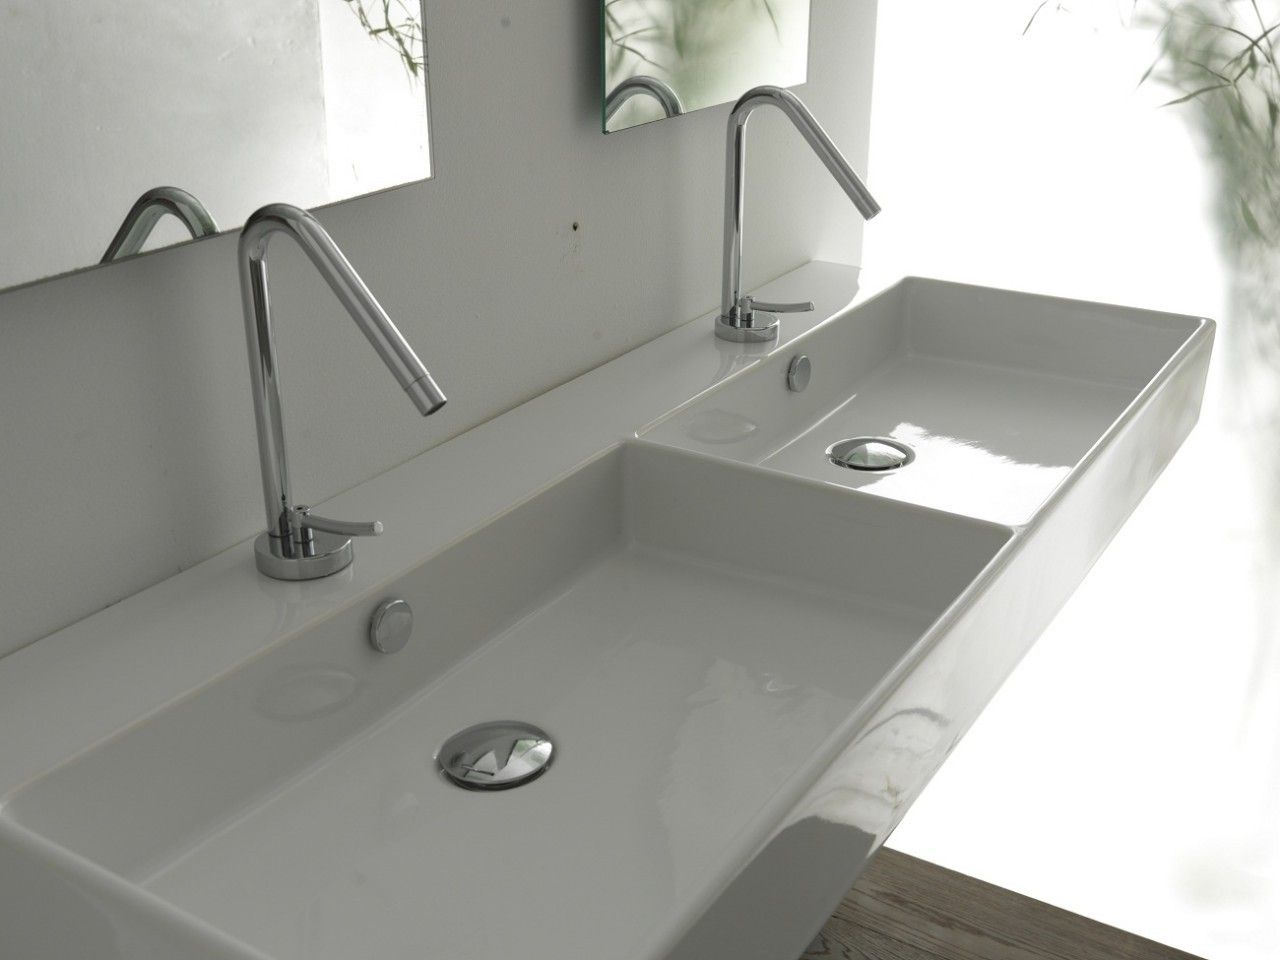 Choosing A Wide Bathroom Sink To